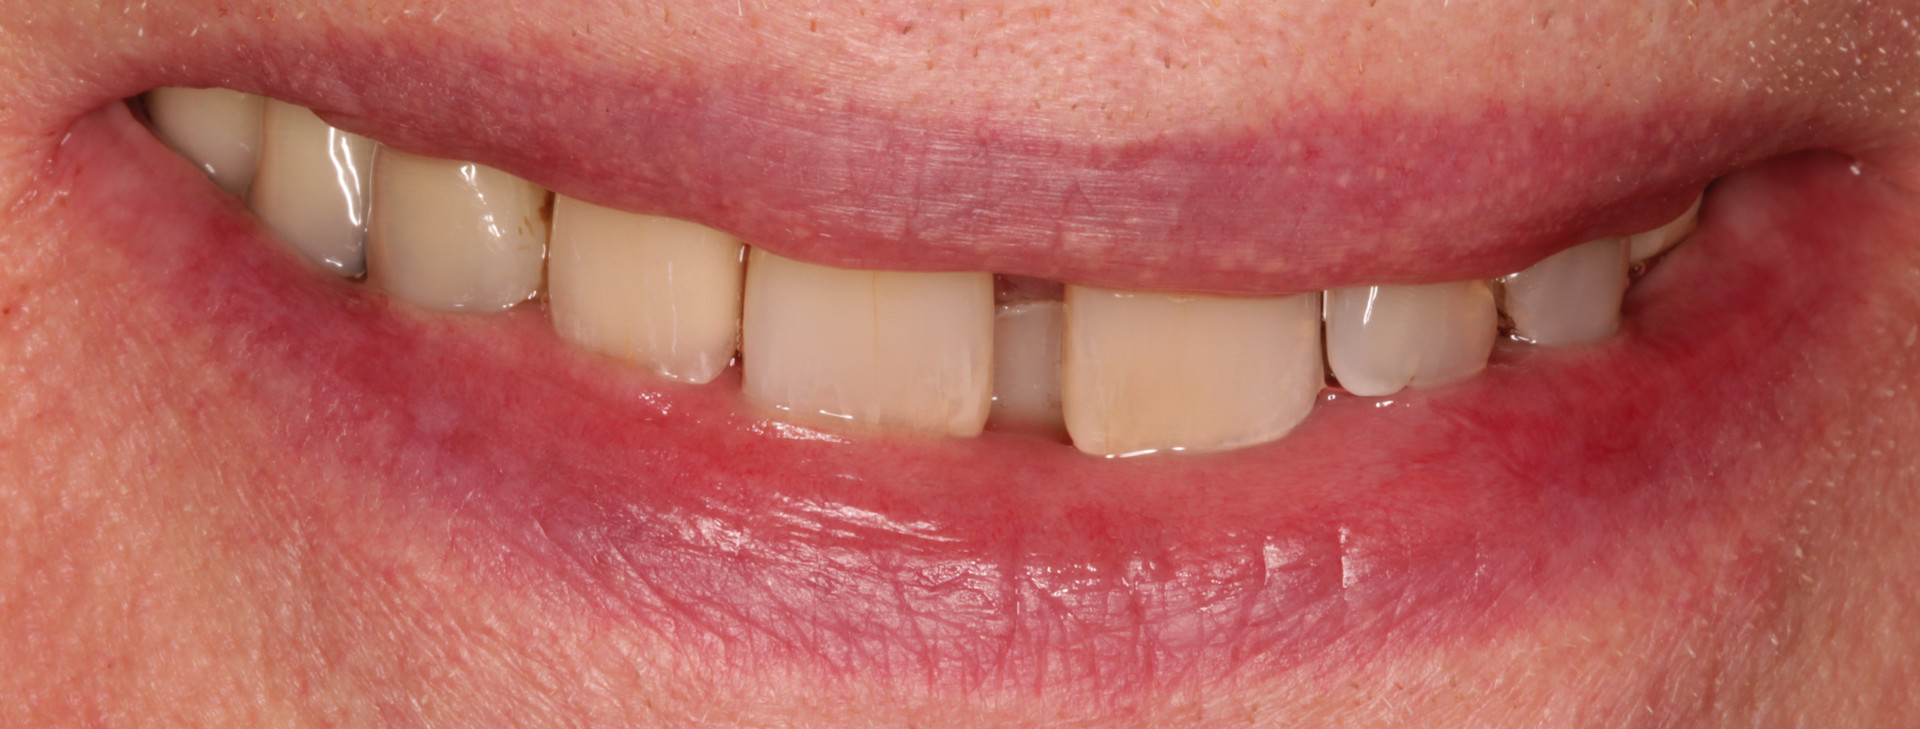 A Seamless Replacement Tooth